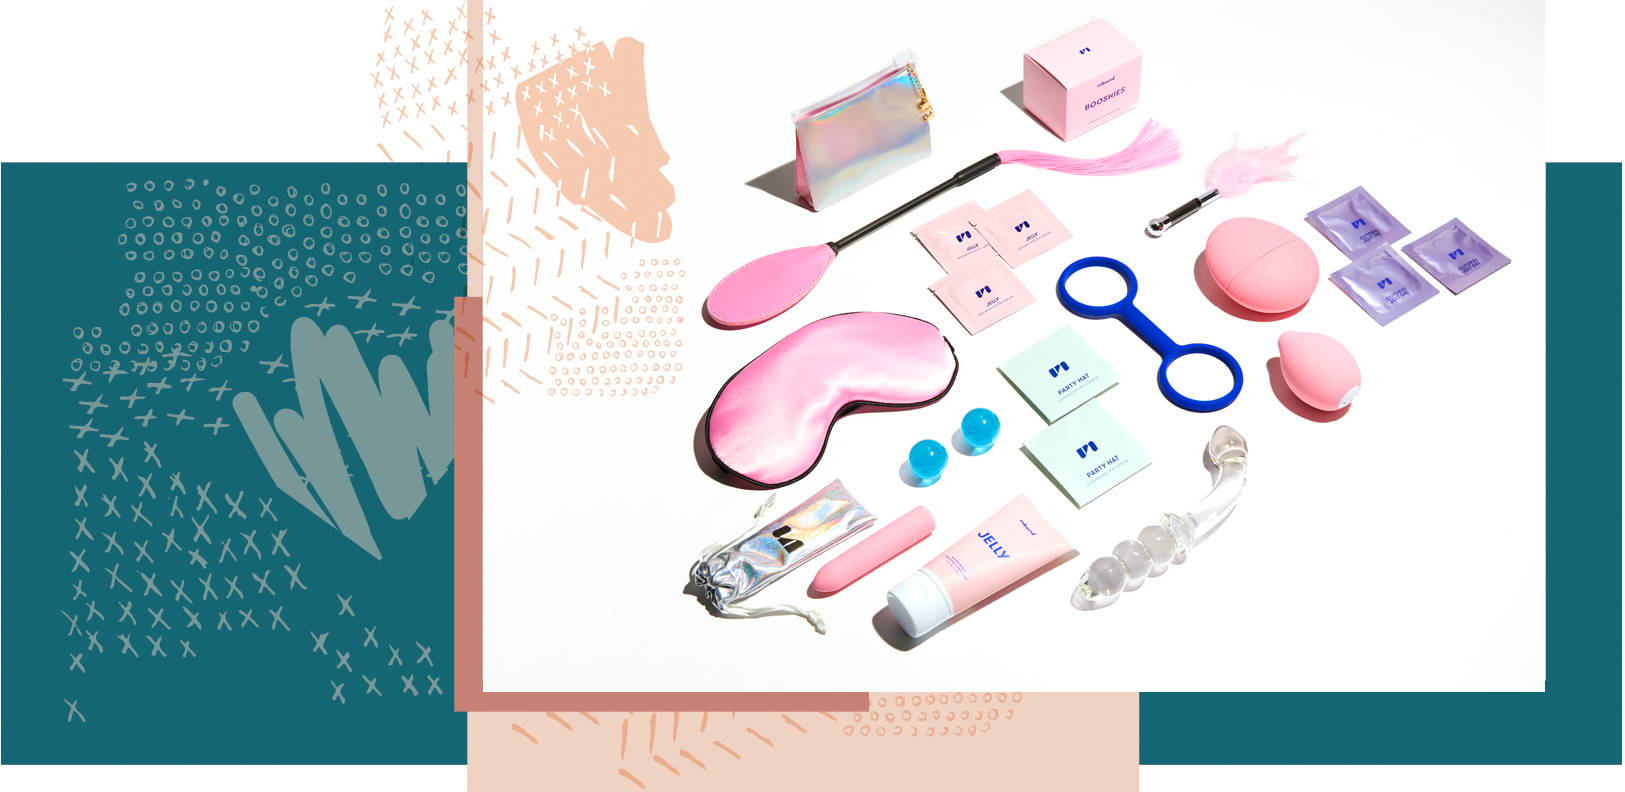 Products from Unbound online store